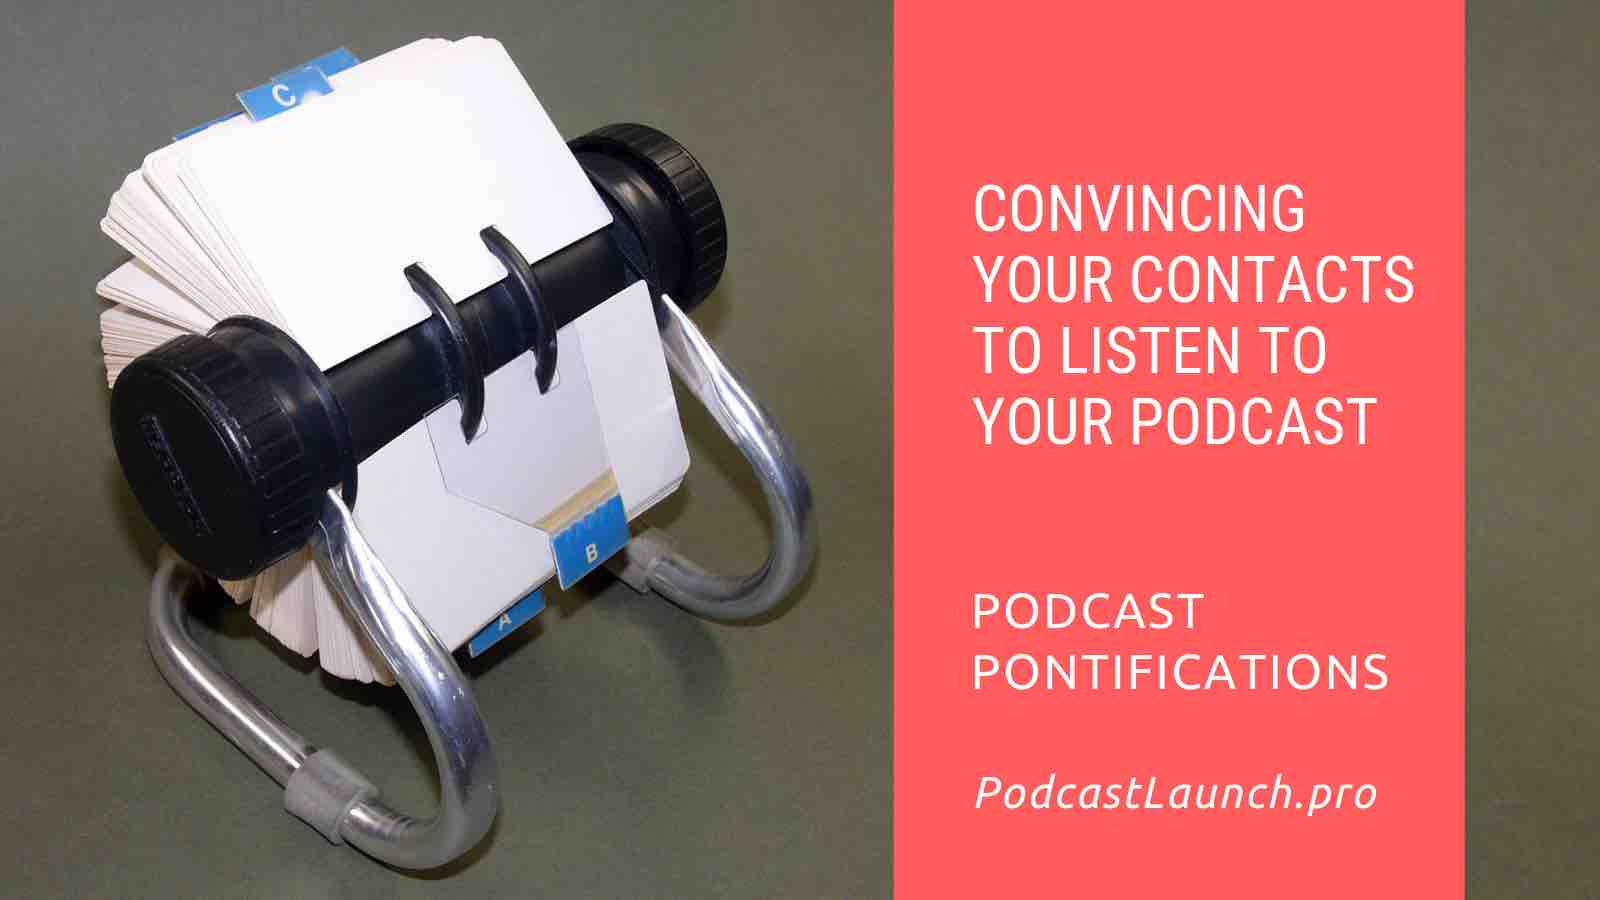 Convincing Your Contacts To Listen To Your Podcast